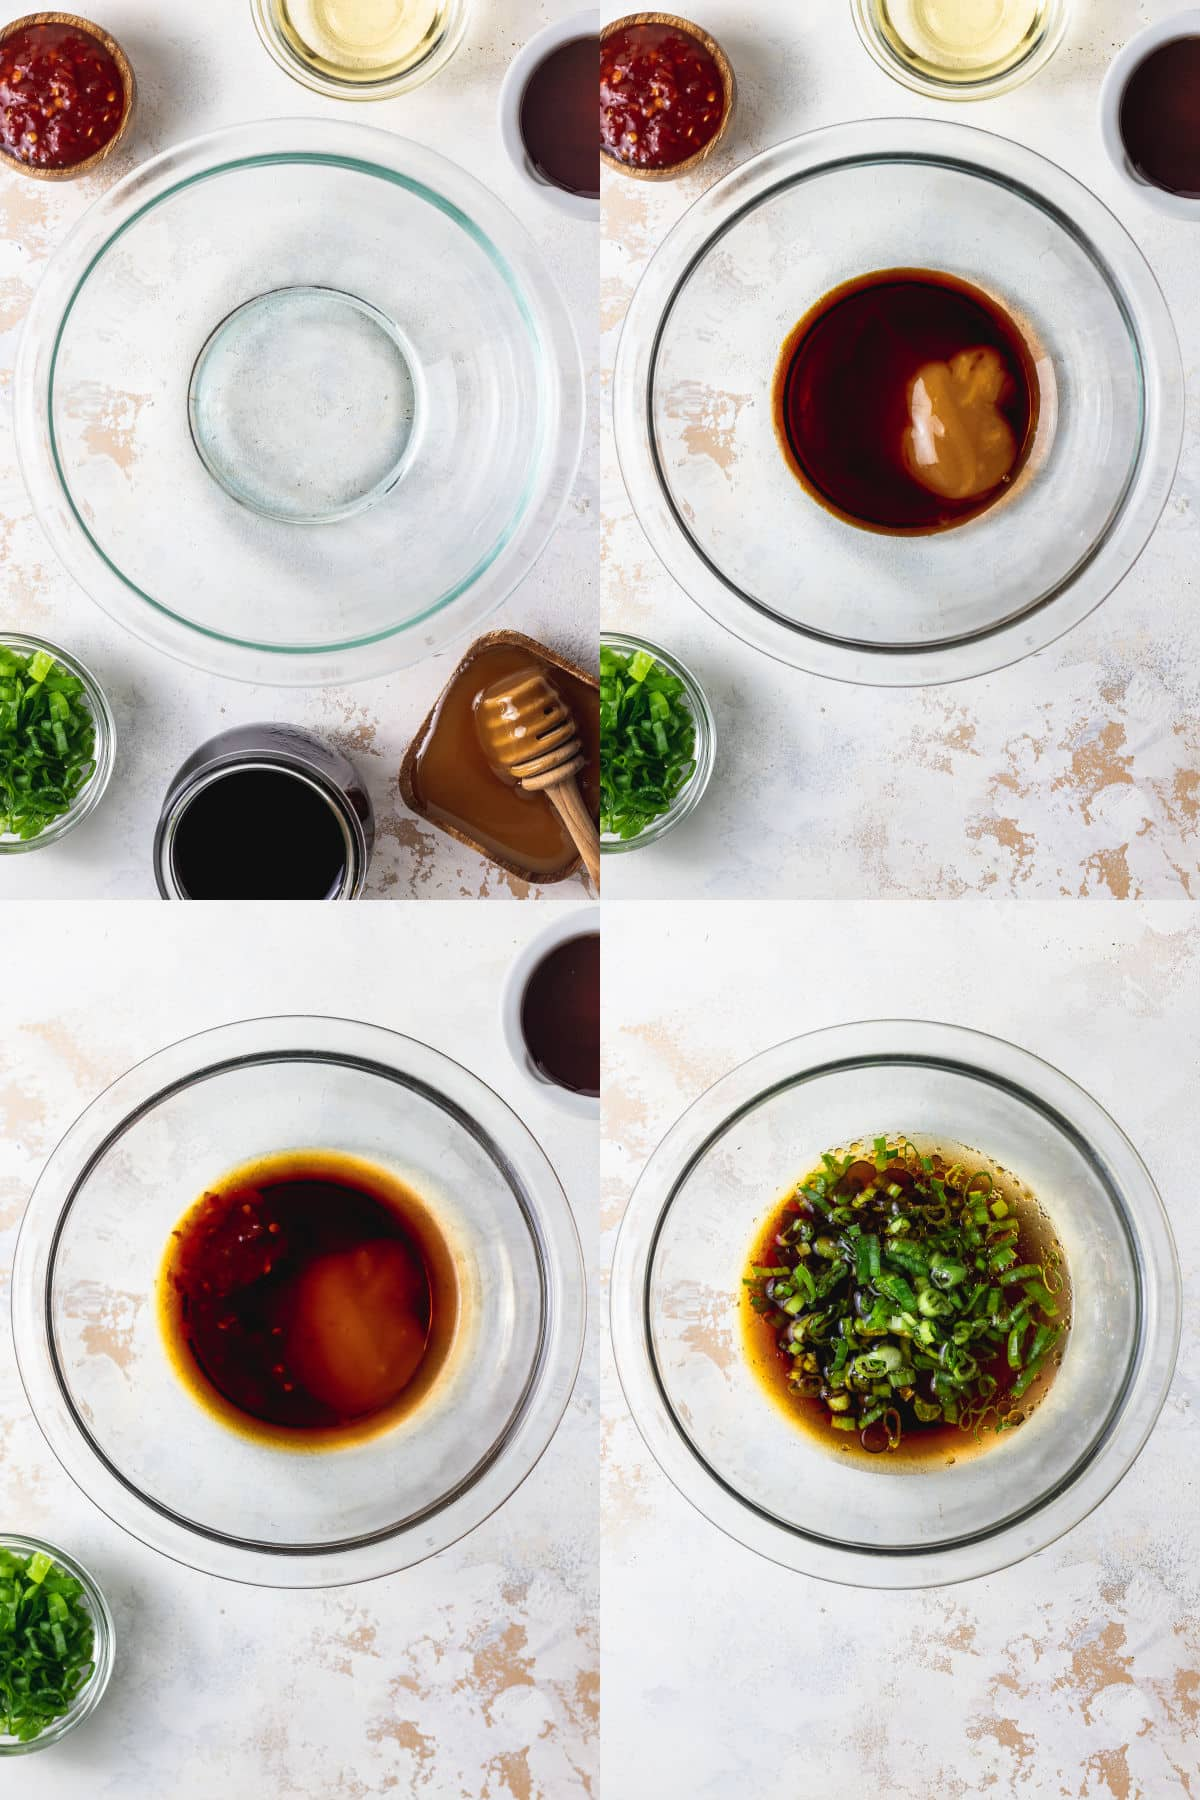 process shots of sesame soy dipping sauce